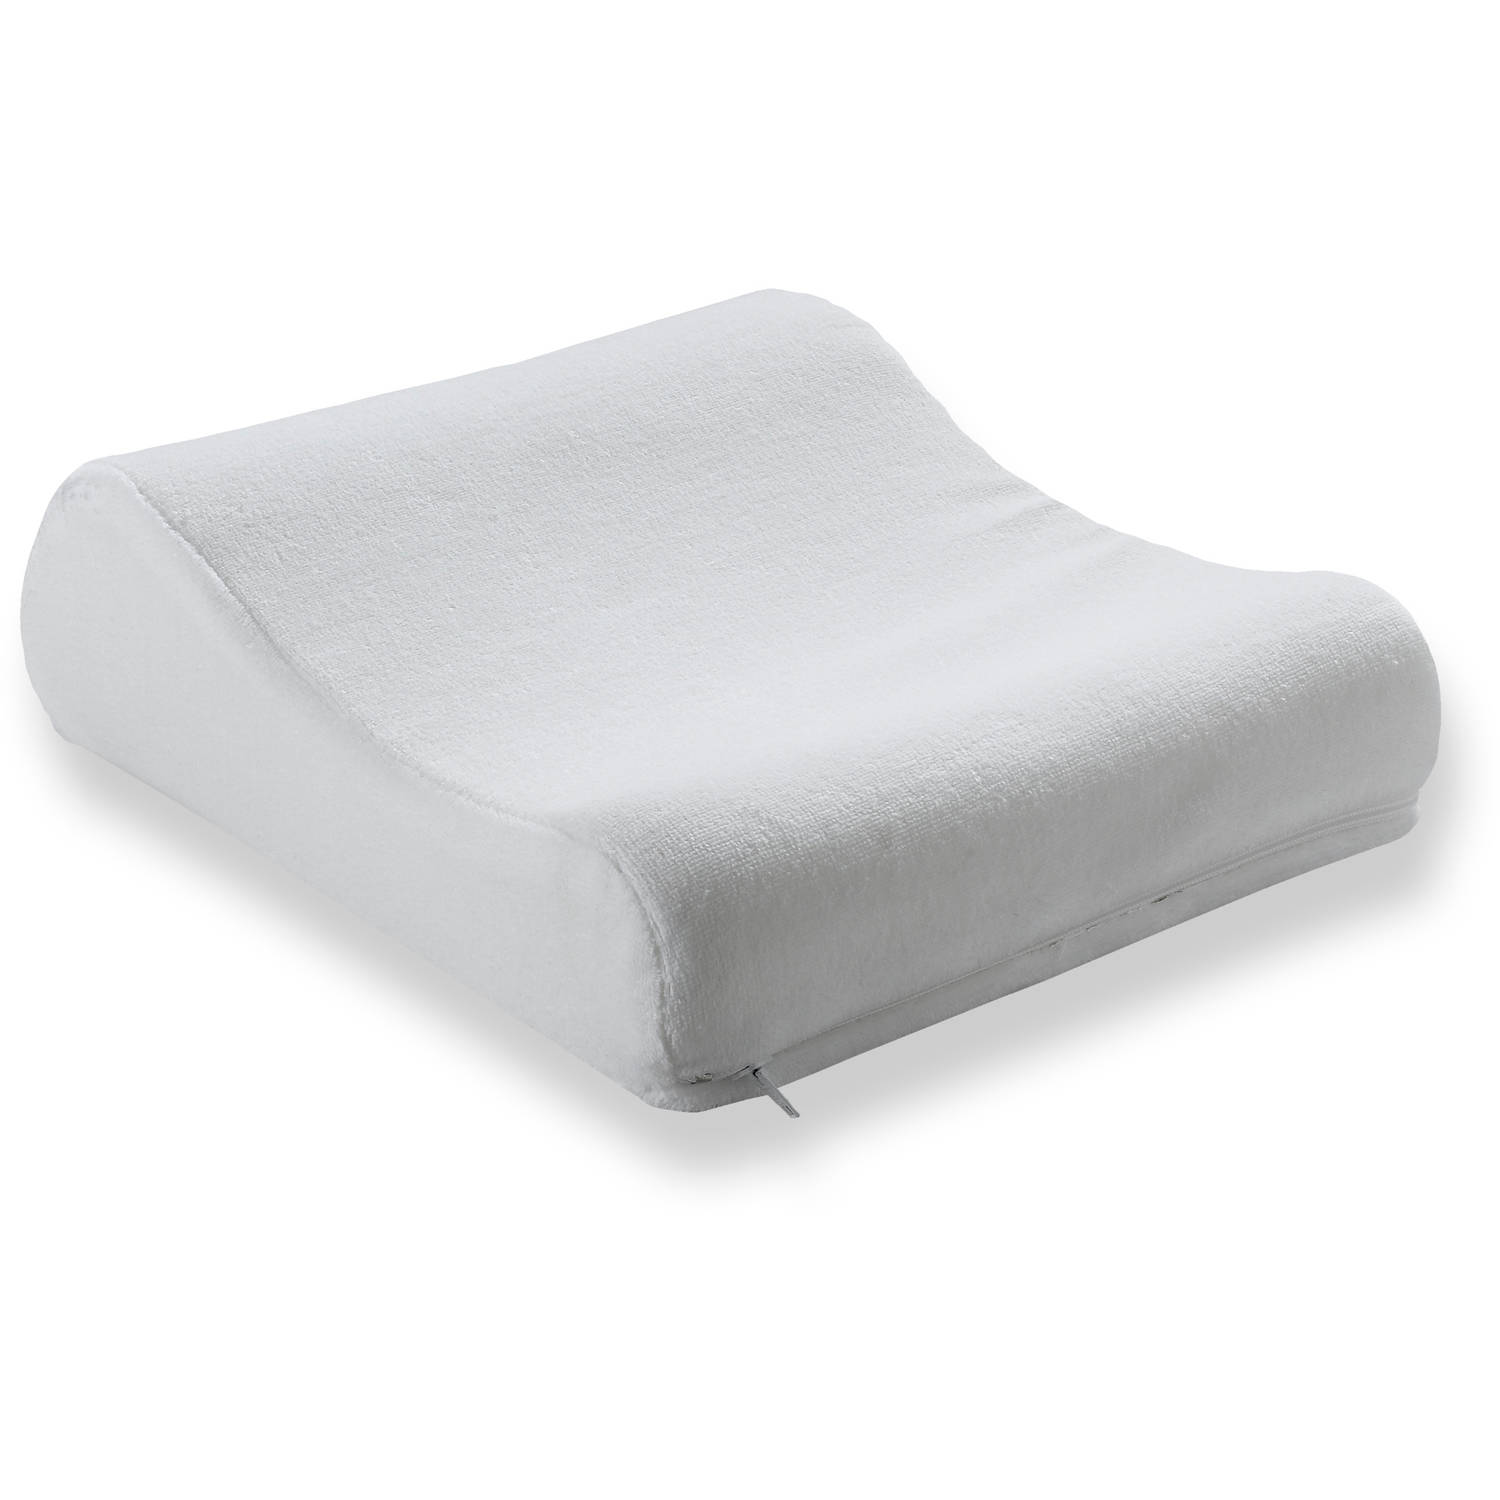 memory loft gallery foam simmons beautyrest bump gel cushion convoluted mattress inch pillow from big comforpedic pillows topper